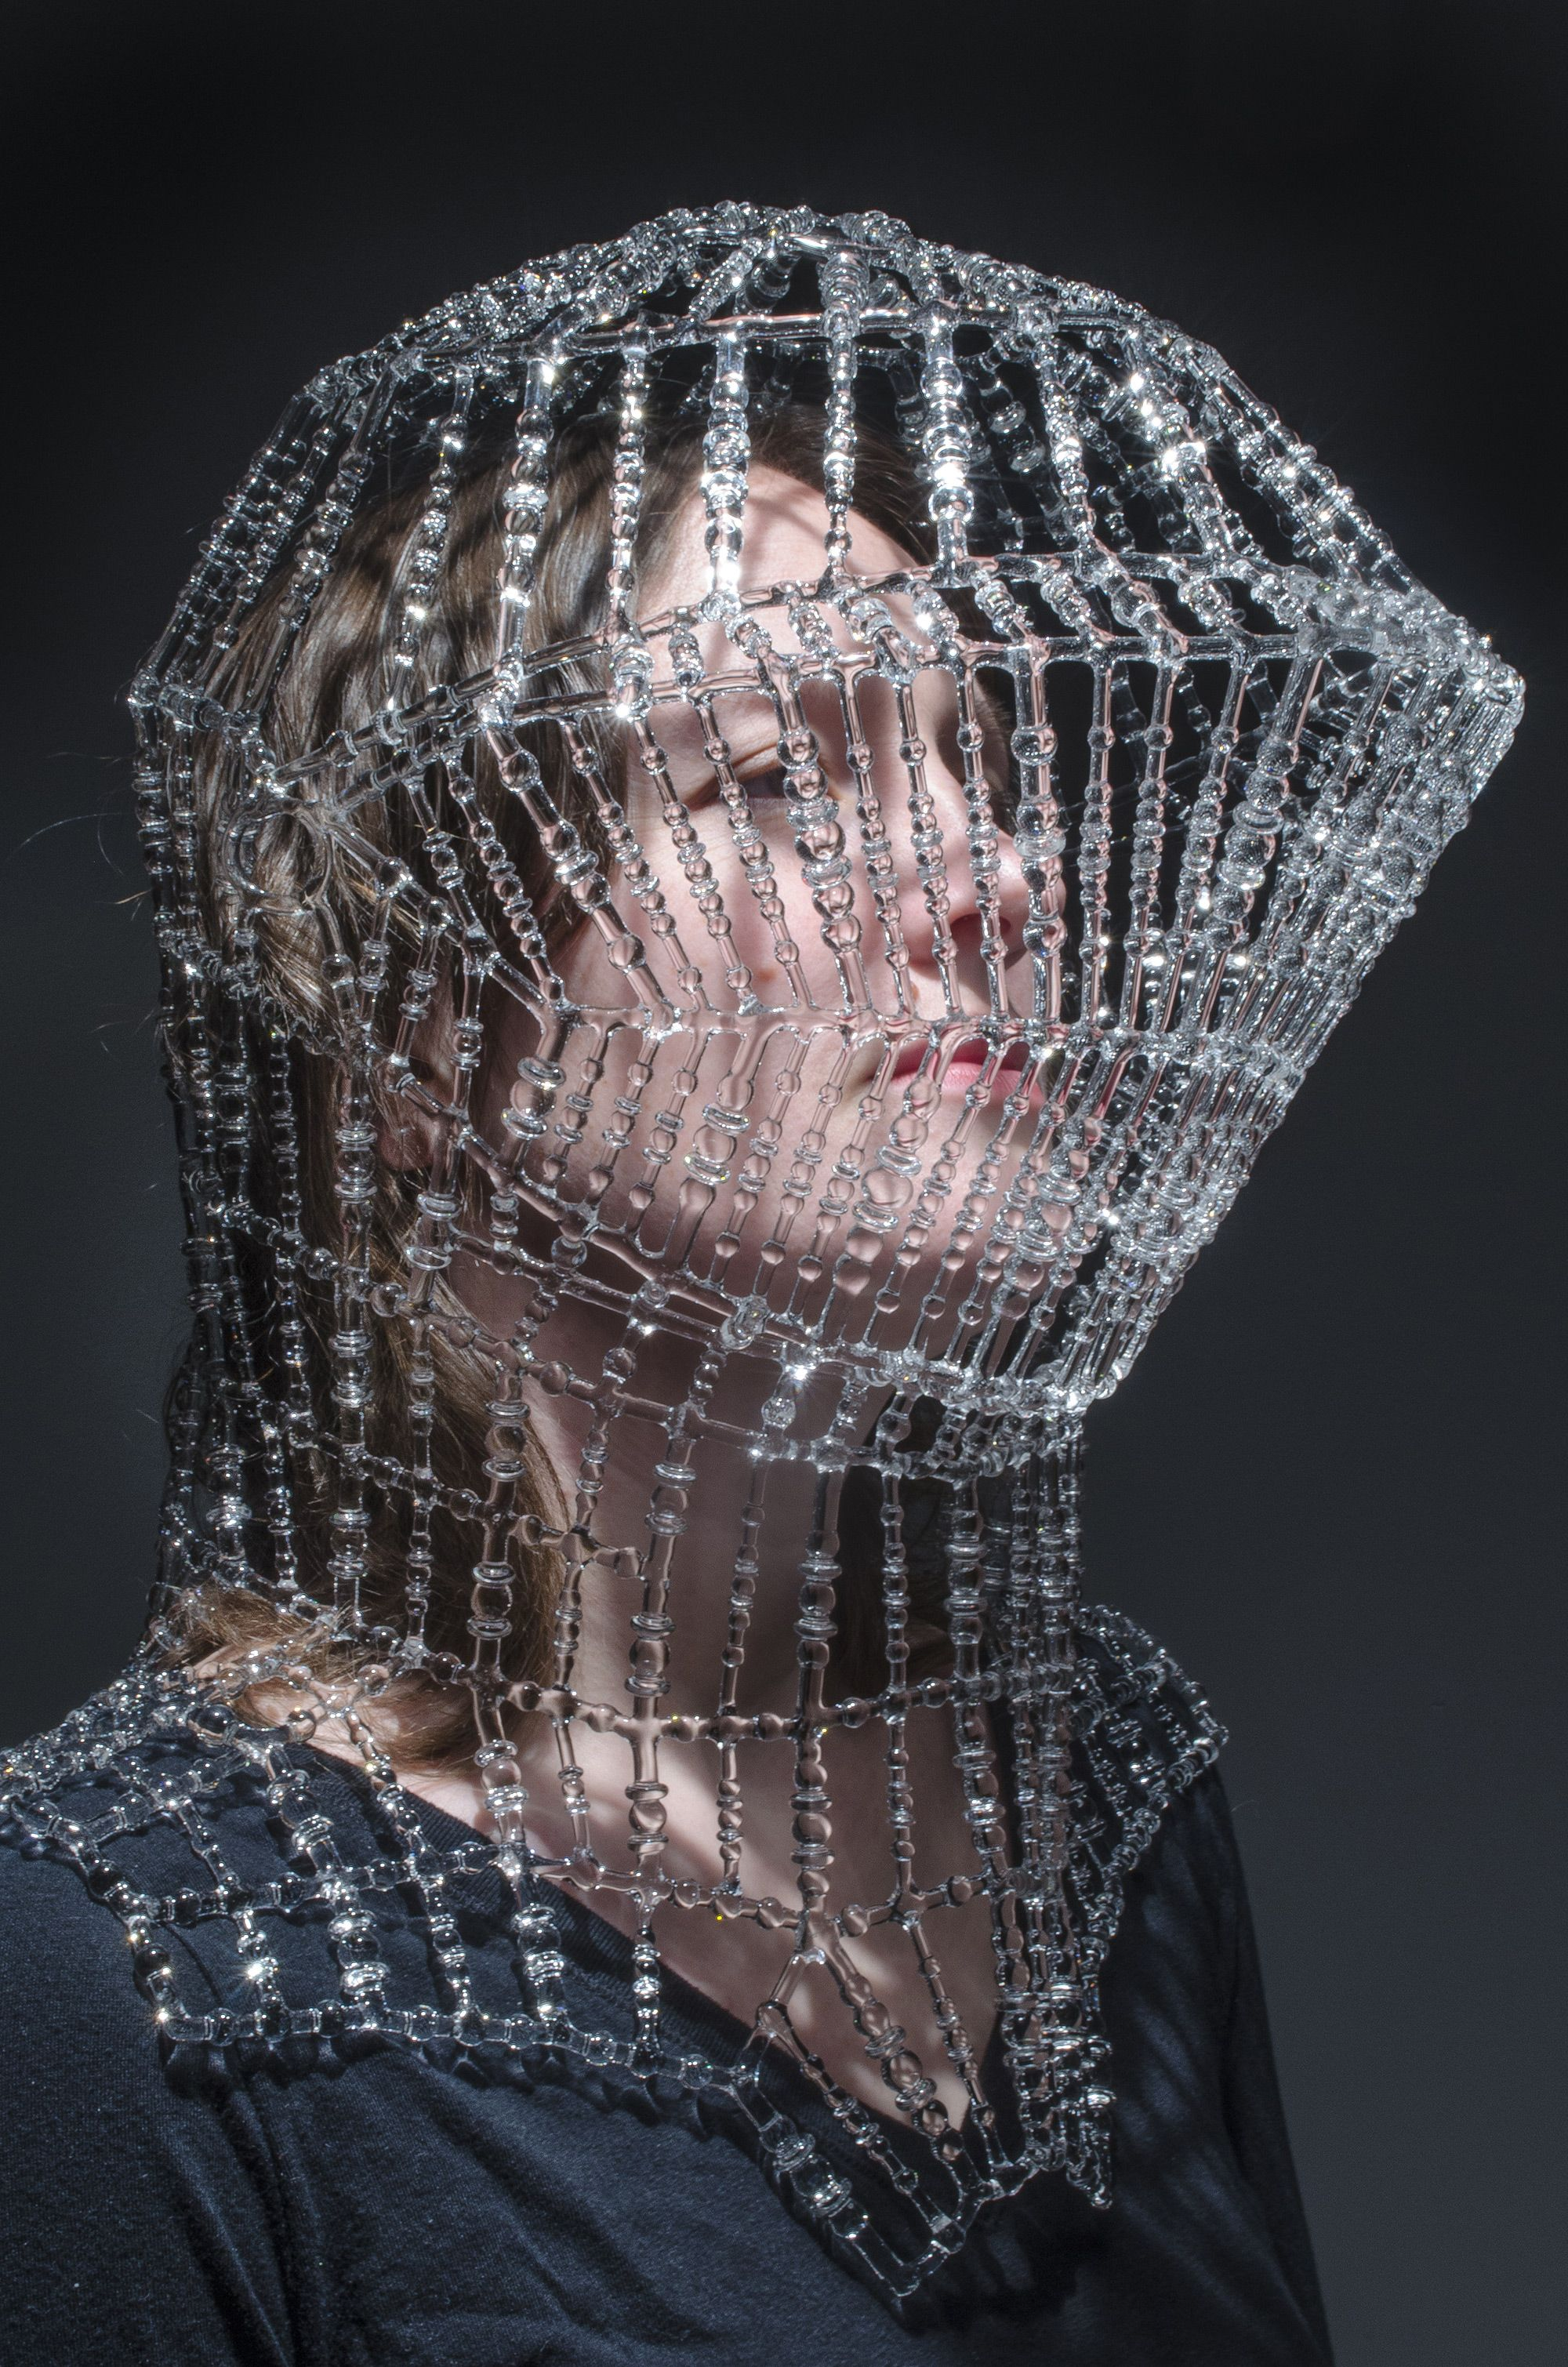 Wearable Glass Objects and Sculptures by Kit Paulson #wearableart